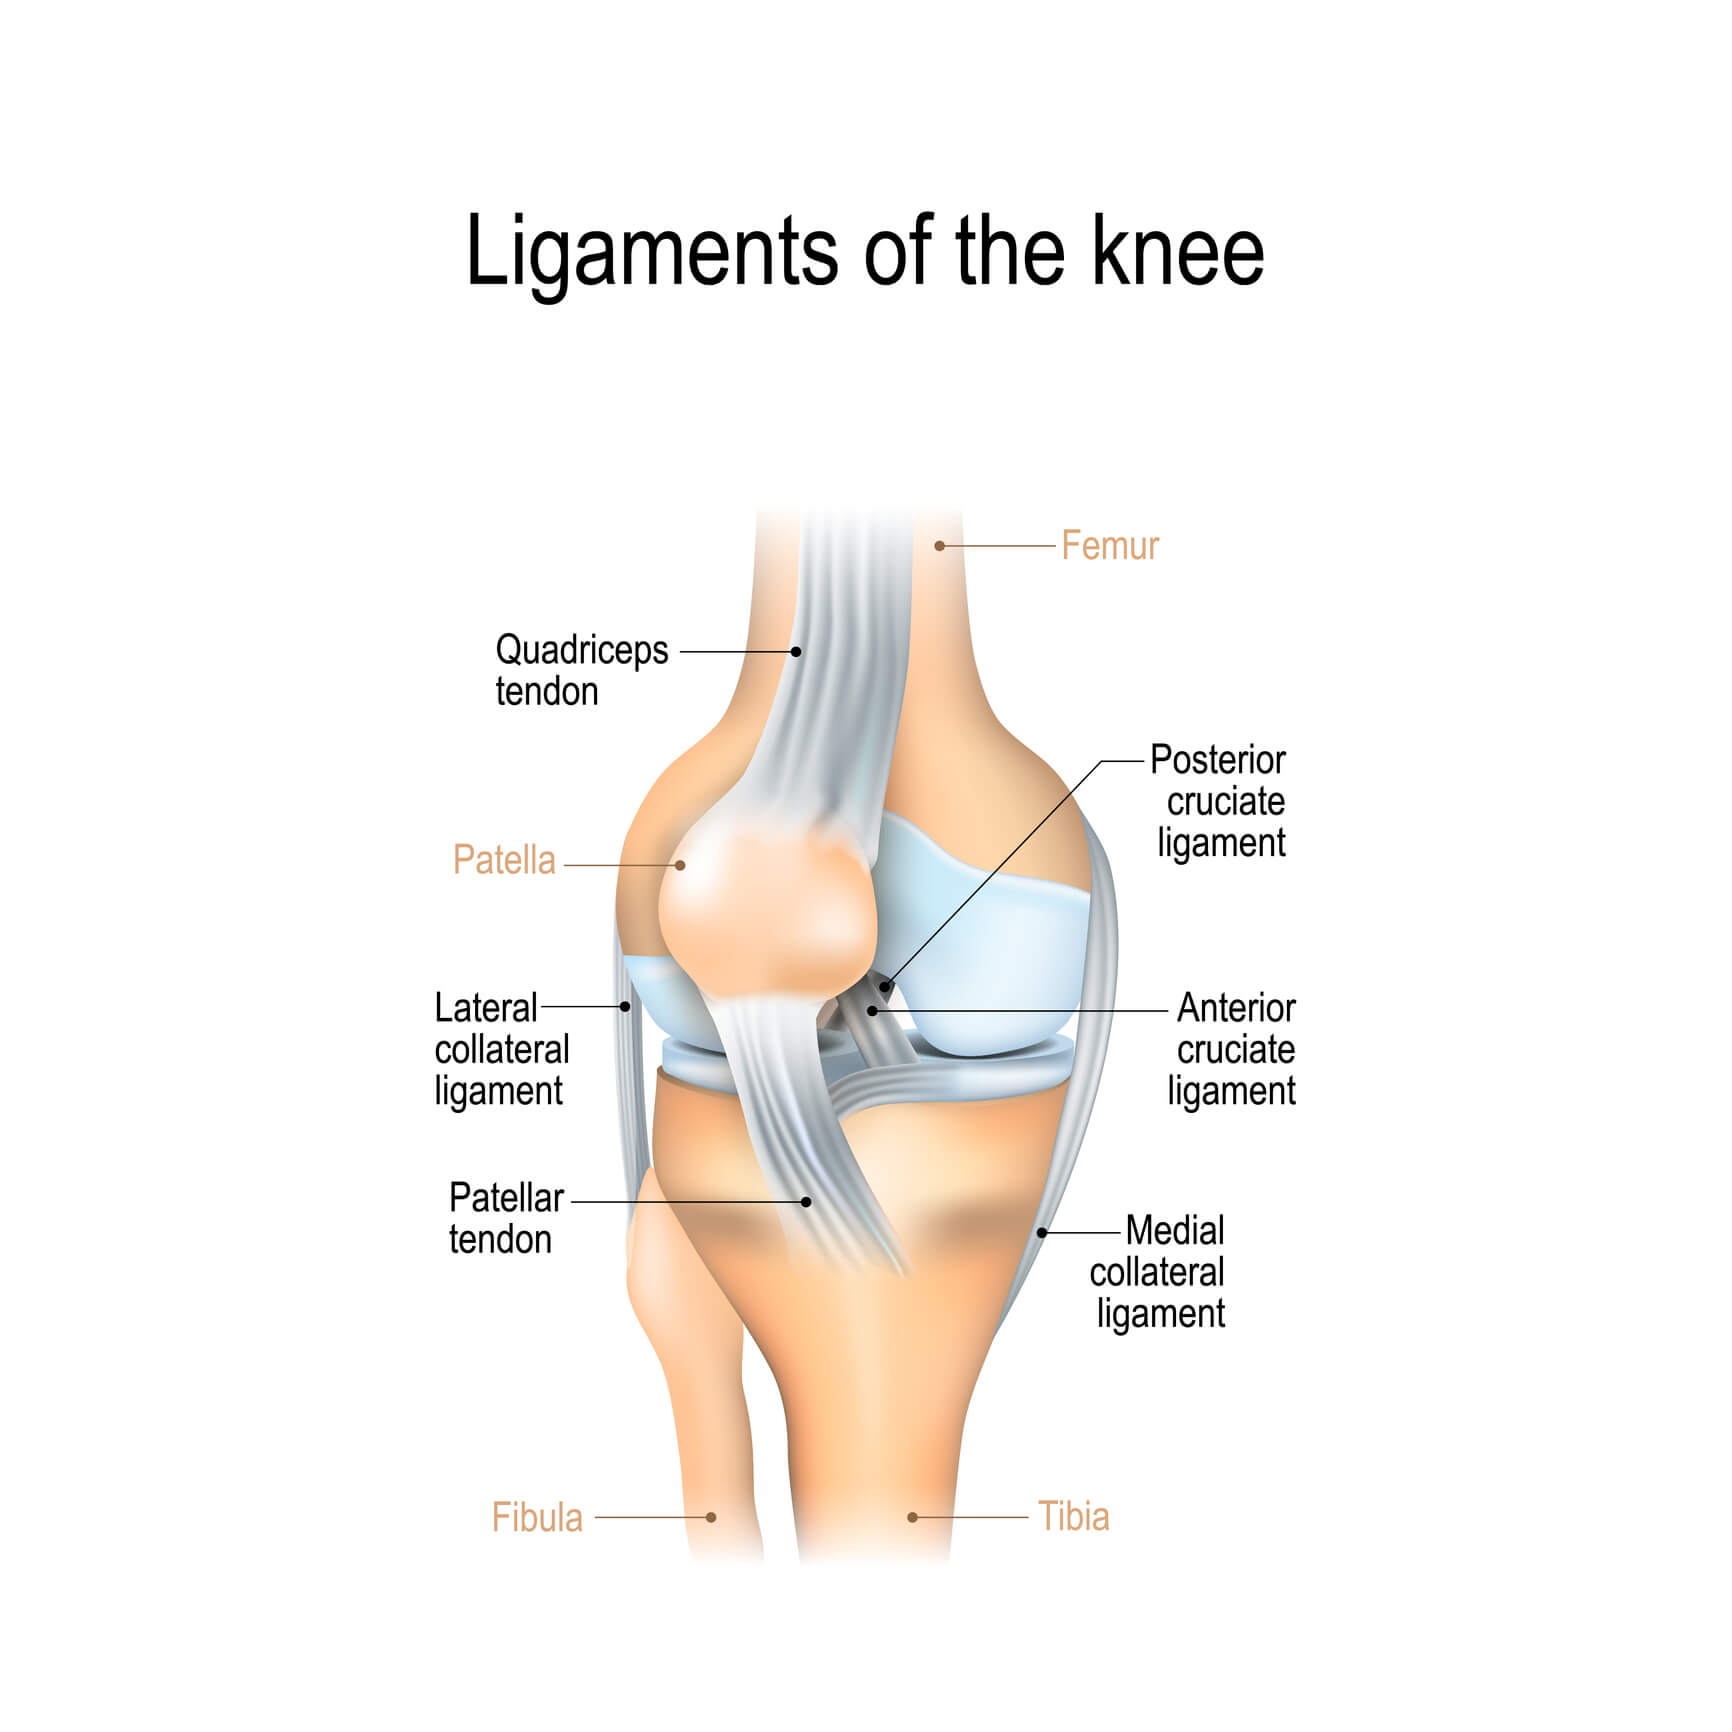 Image of a knee and its ligaments, including PCL, MCL, LCL and ACL.